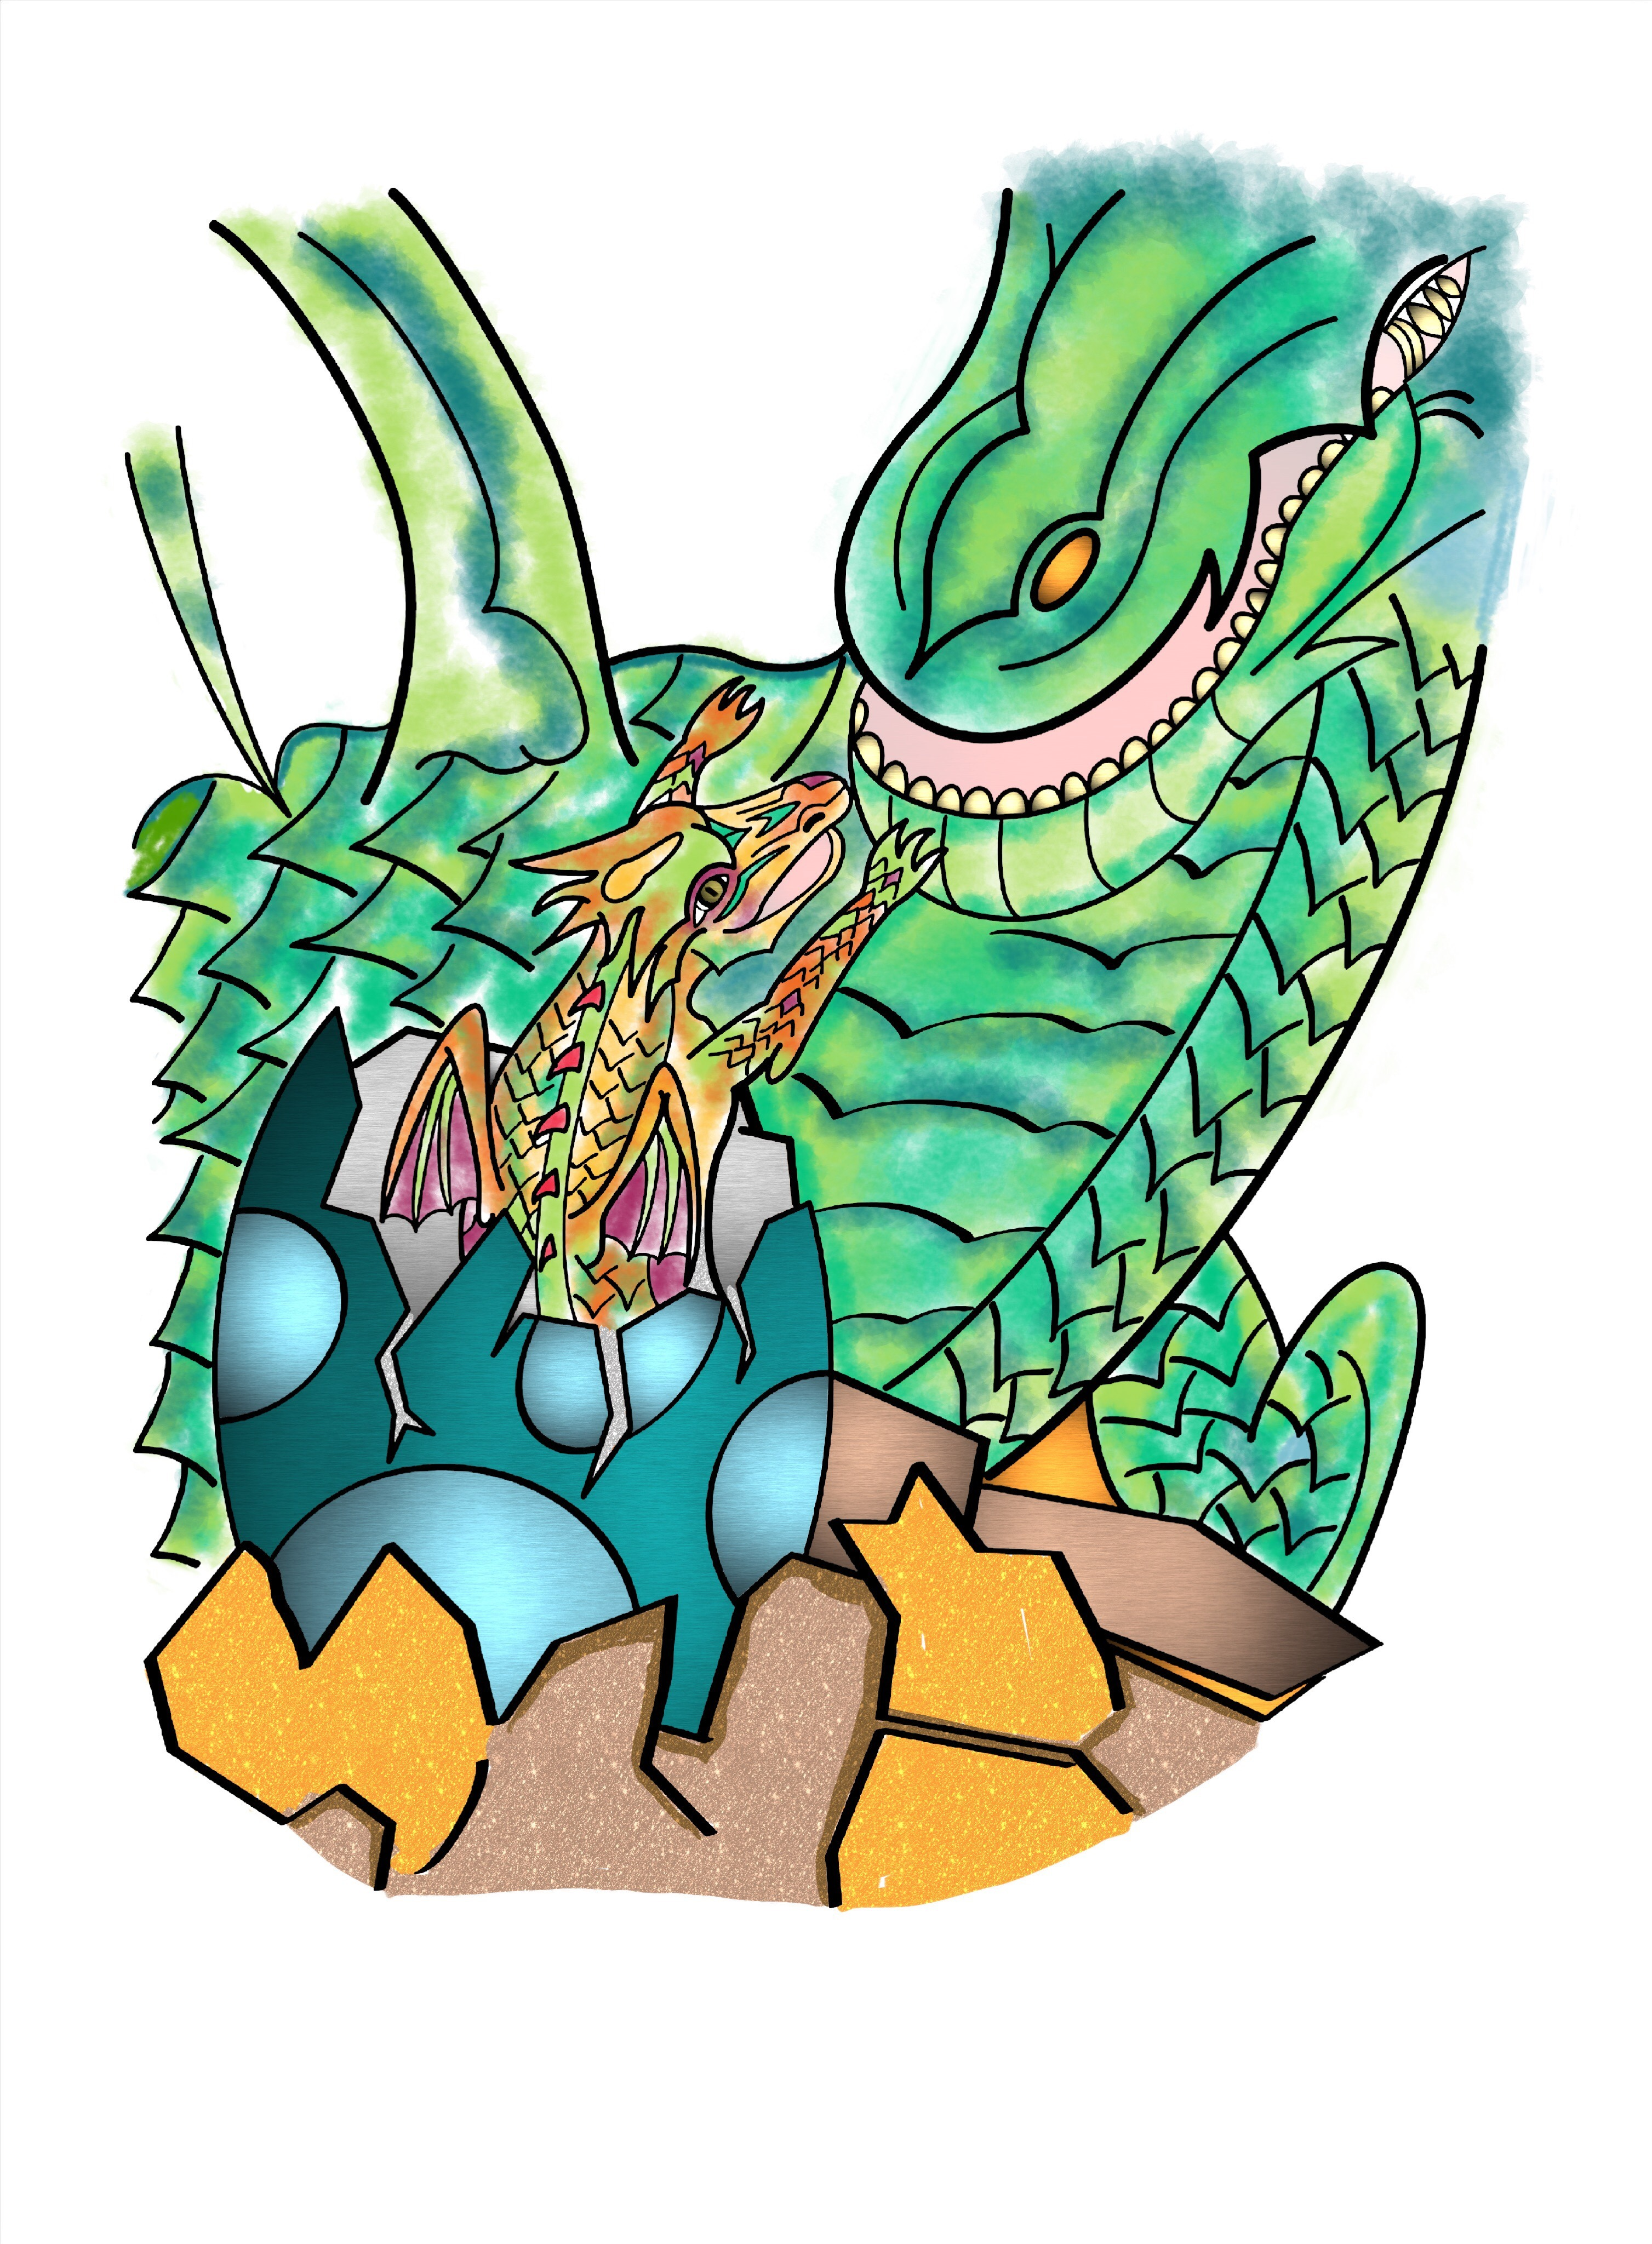 Additional Images: Dragons Coloring Book